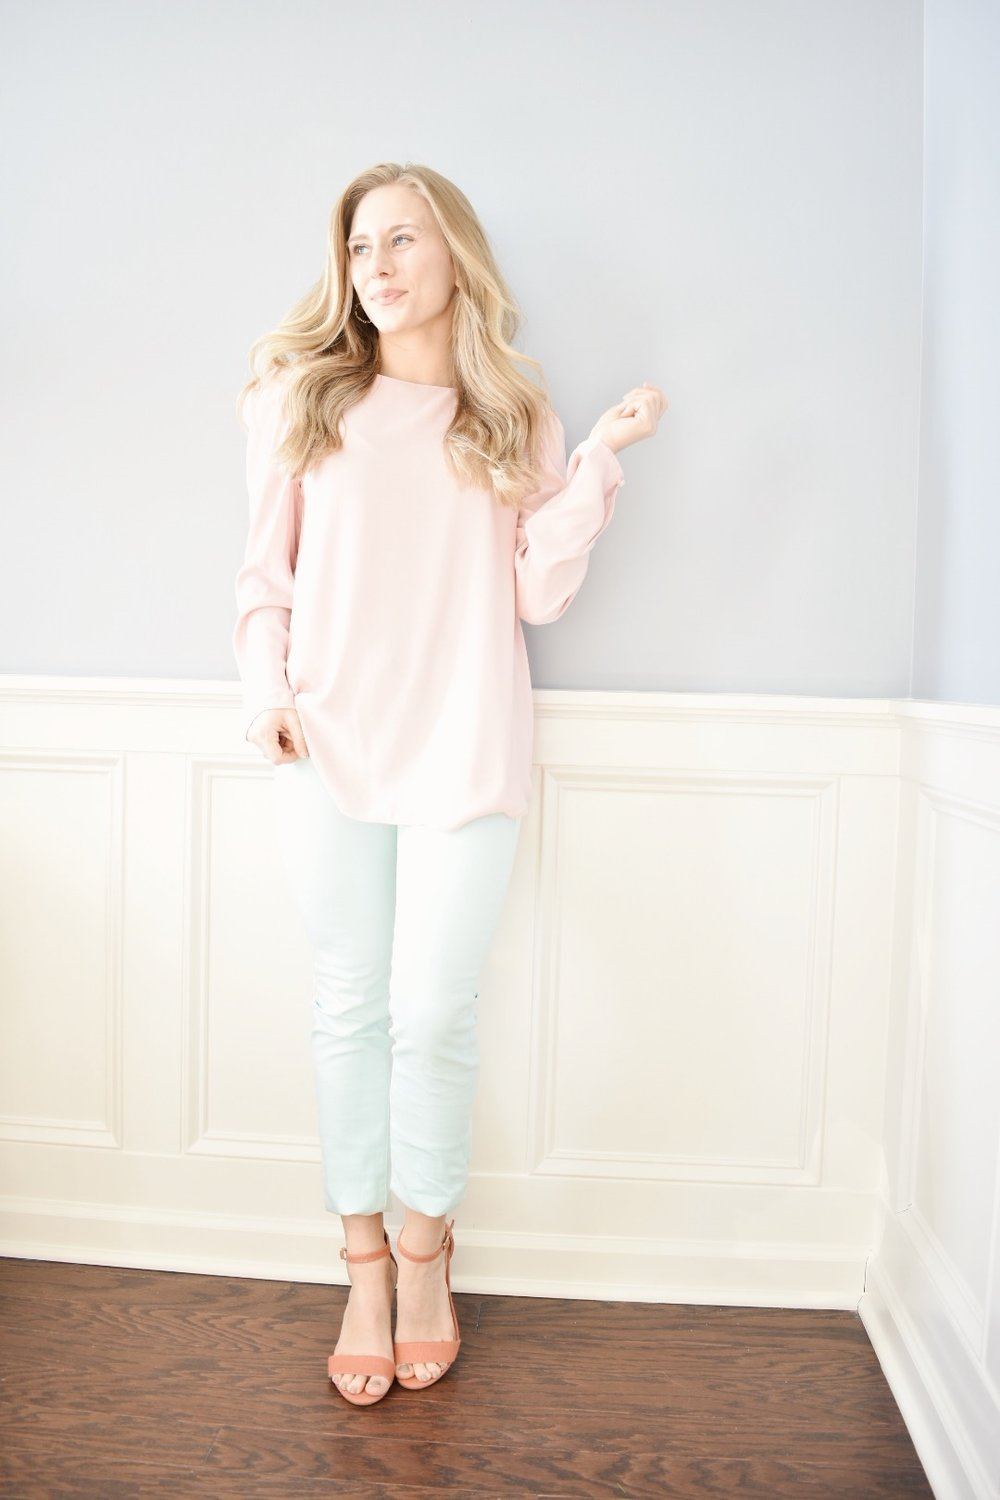 On The Paige Blog | 5 Ways to Wear Blush Tones | Blush with Pastels